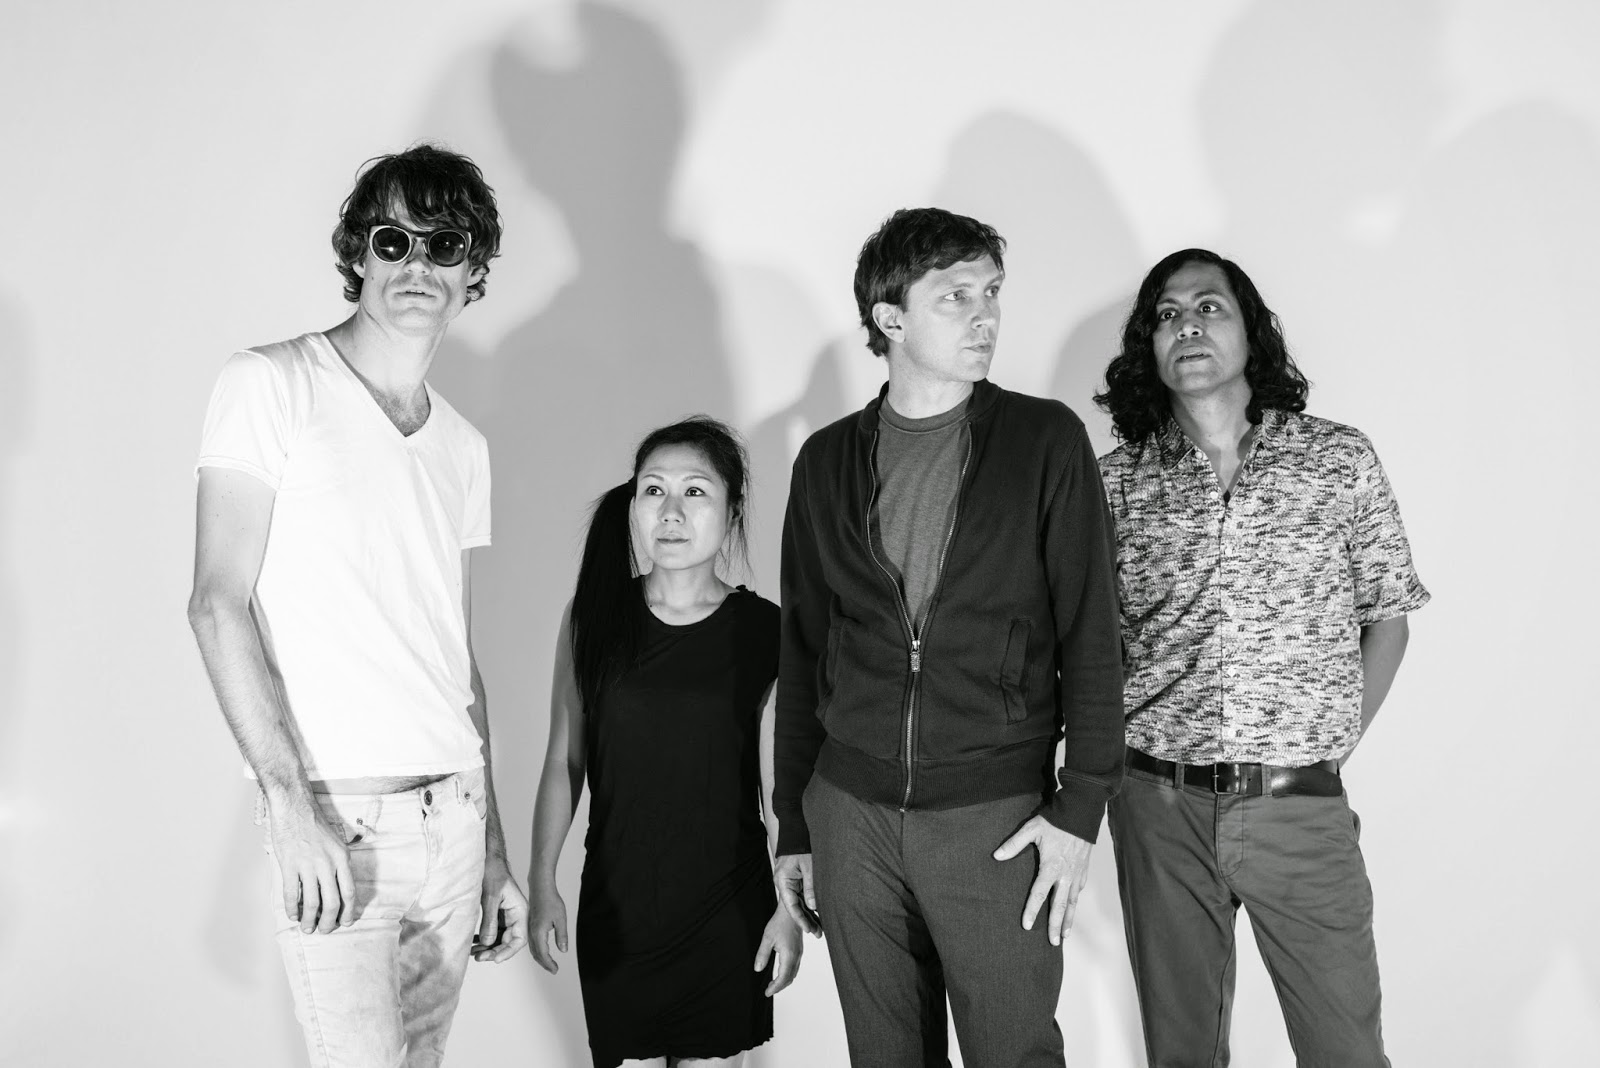 Deerhoof band member quartet all together